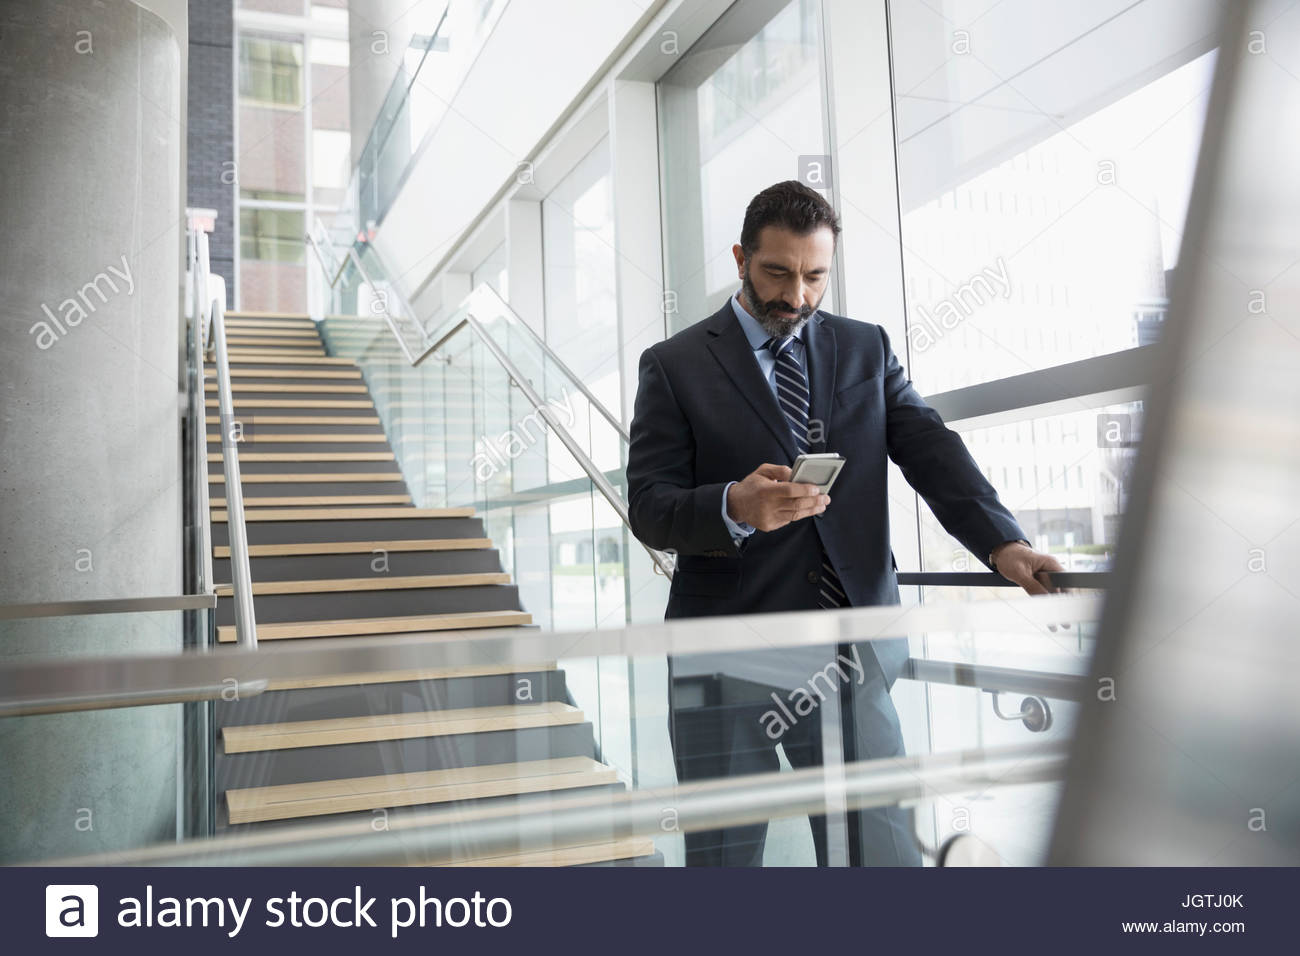 Businessman texting with cell phone on office escaliers Photo Stock